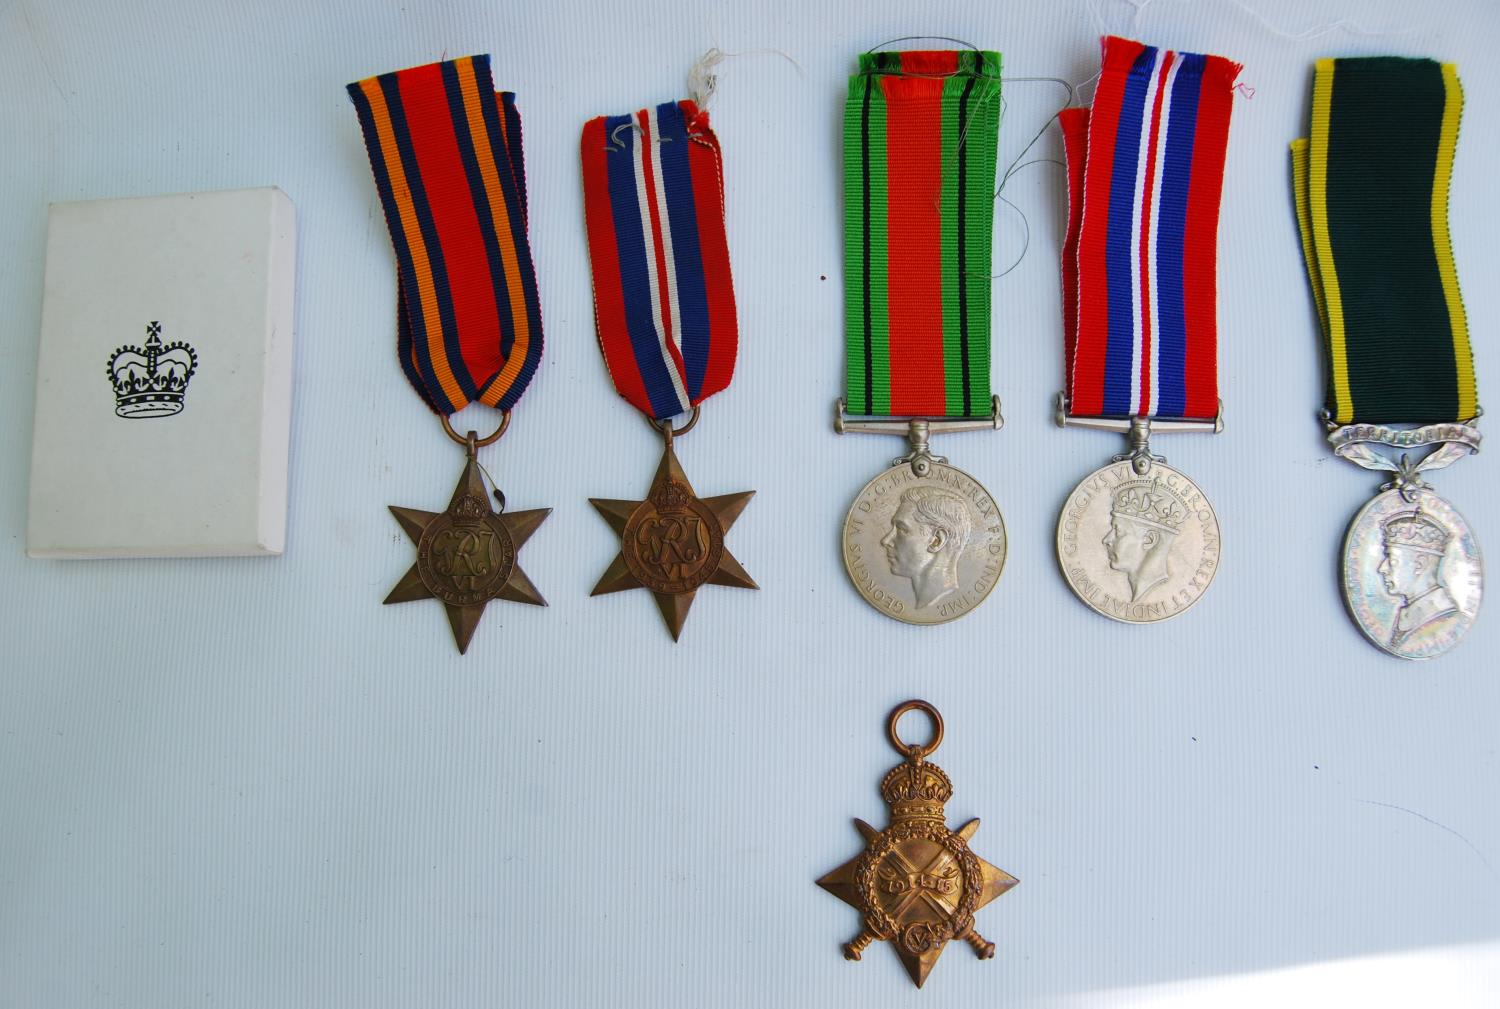 World War I medal group for Private D Kennan, Royal Scots, 3189854, Territorial Efficient Service